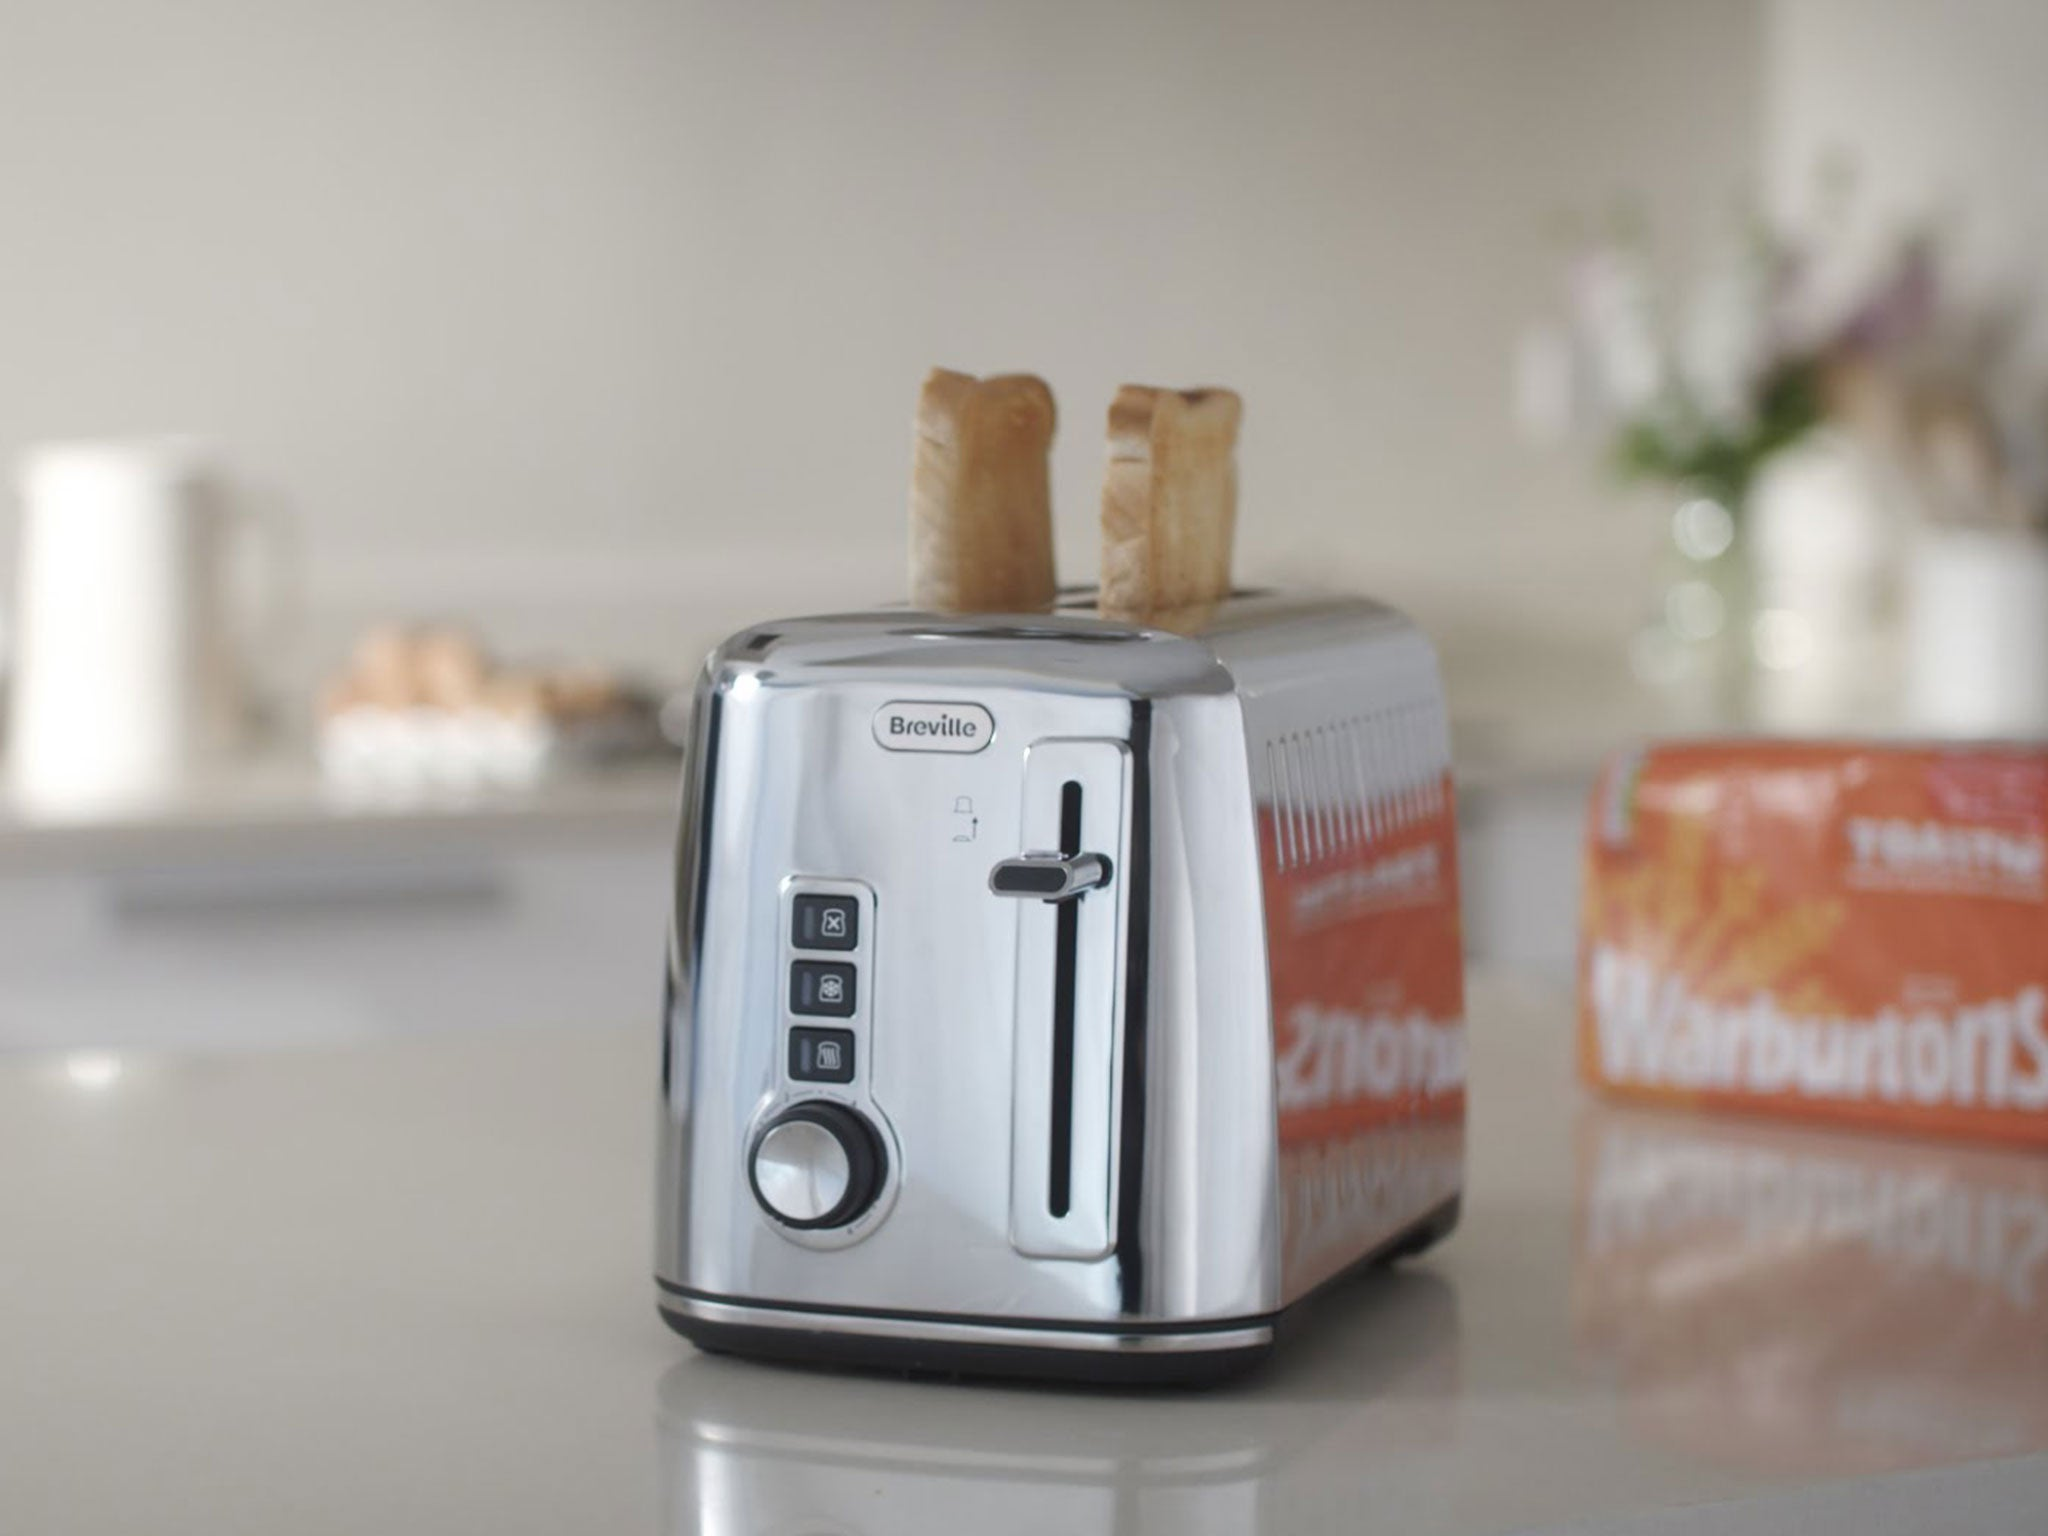 How much electricity does a toaster use?